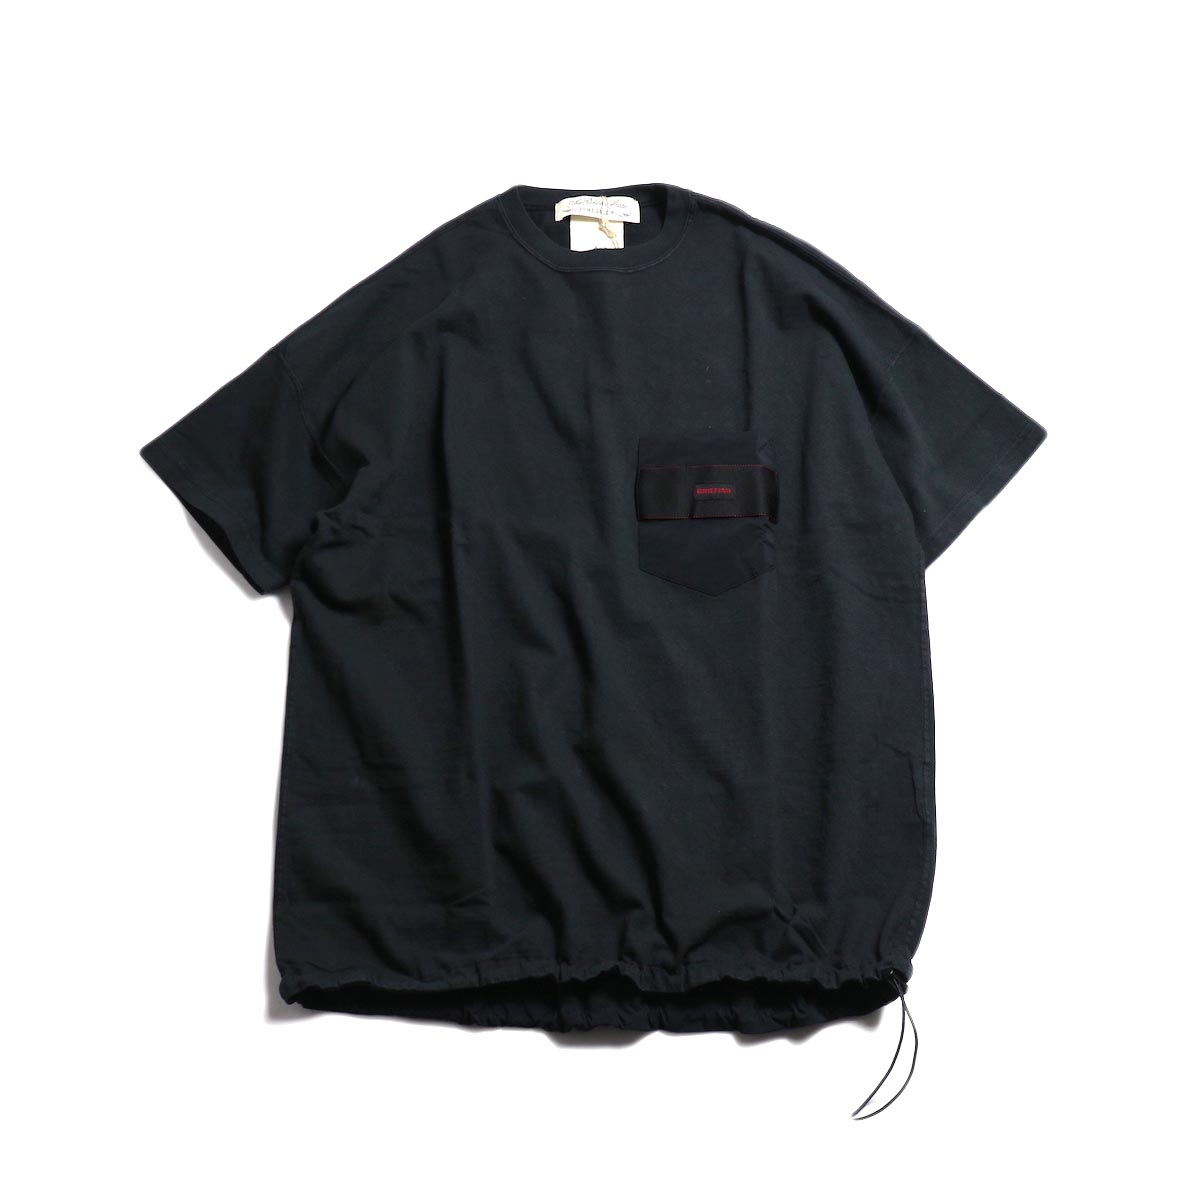 REMI RELIEF × BRIEFING / S/S Pocket Tee -Black